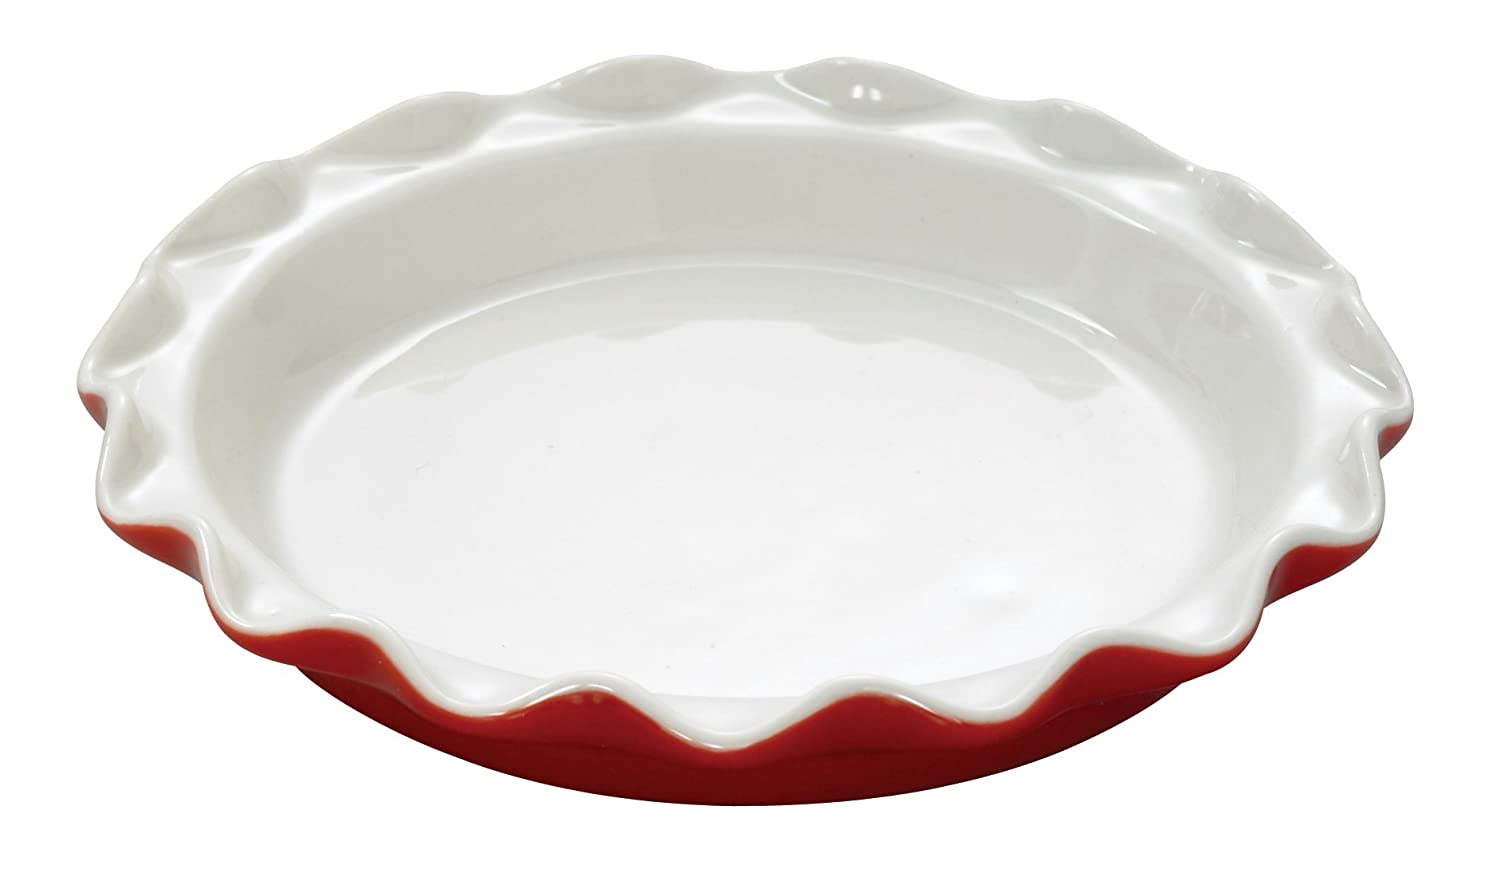 HIC Harold Import Rose Levy Beranbaum's Rose's Mini Pie Plate, 7-Inch, Set of 2, Red Harold Import Company RL5/2